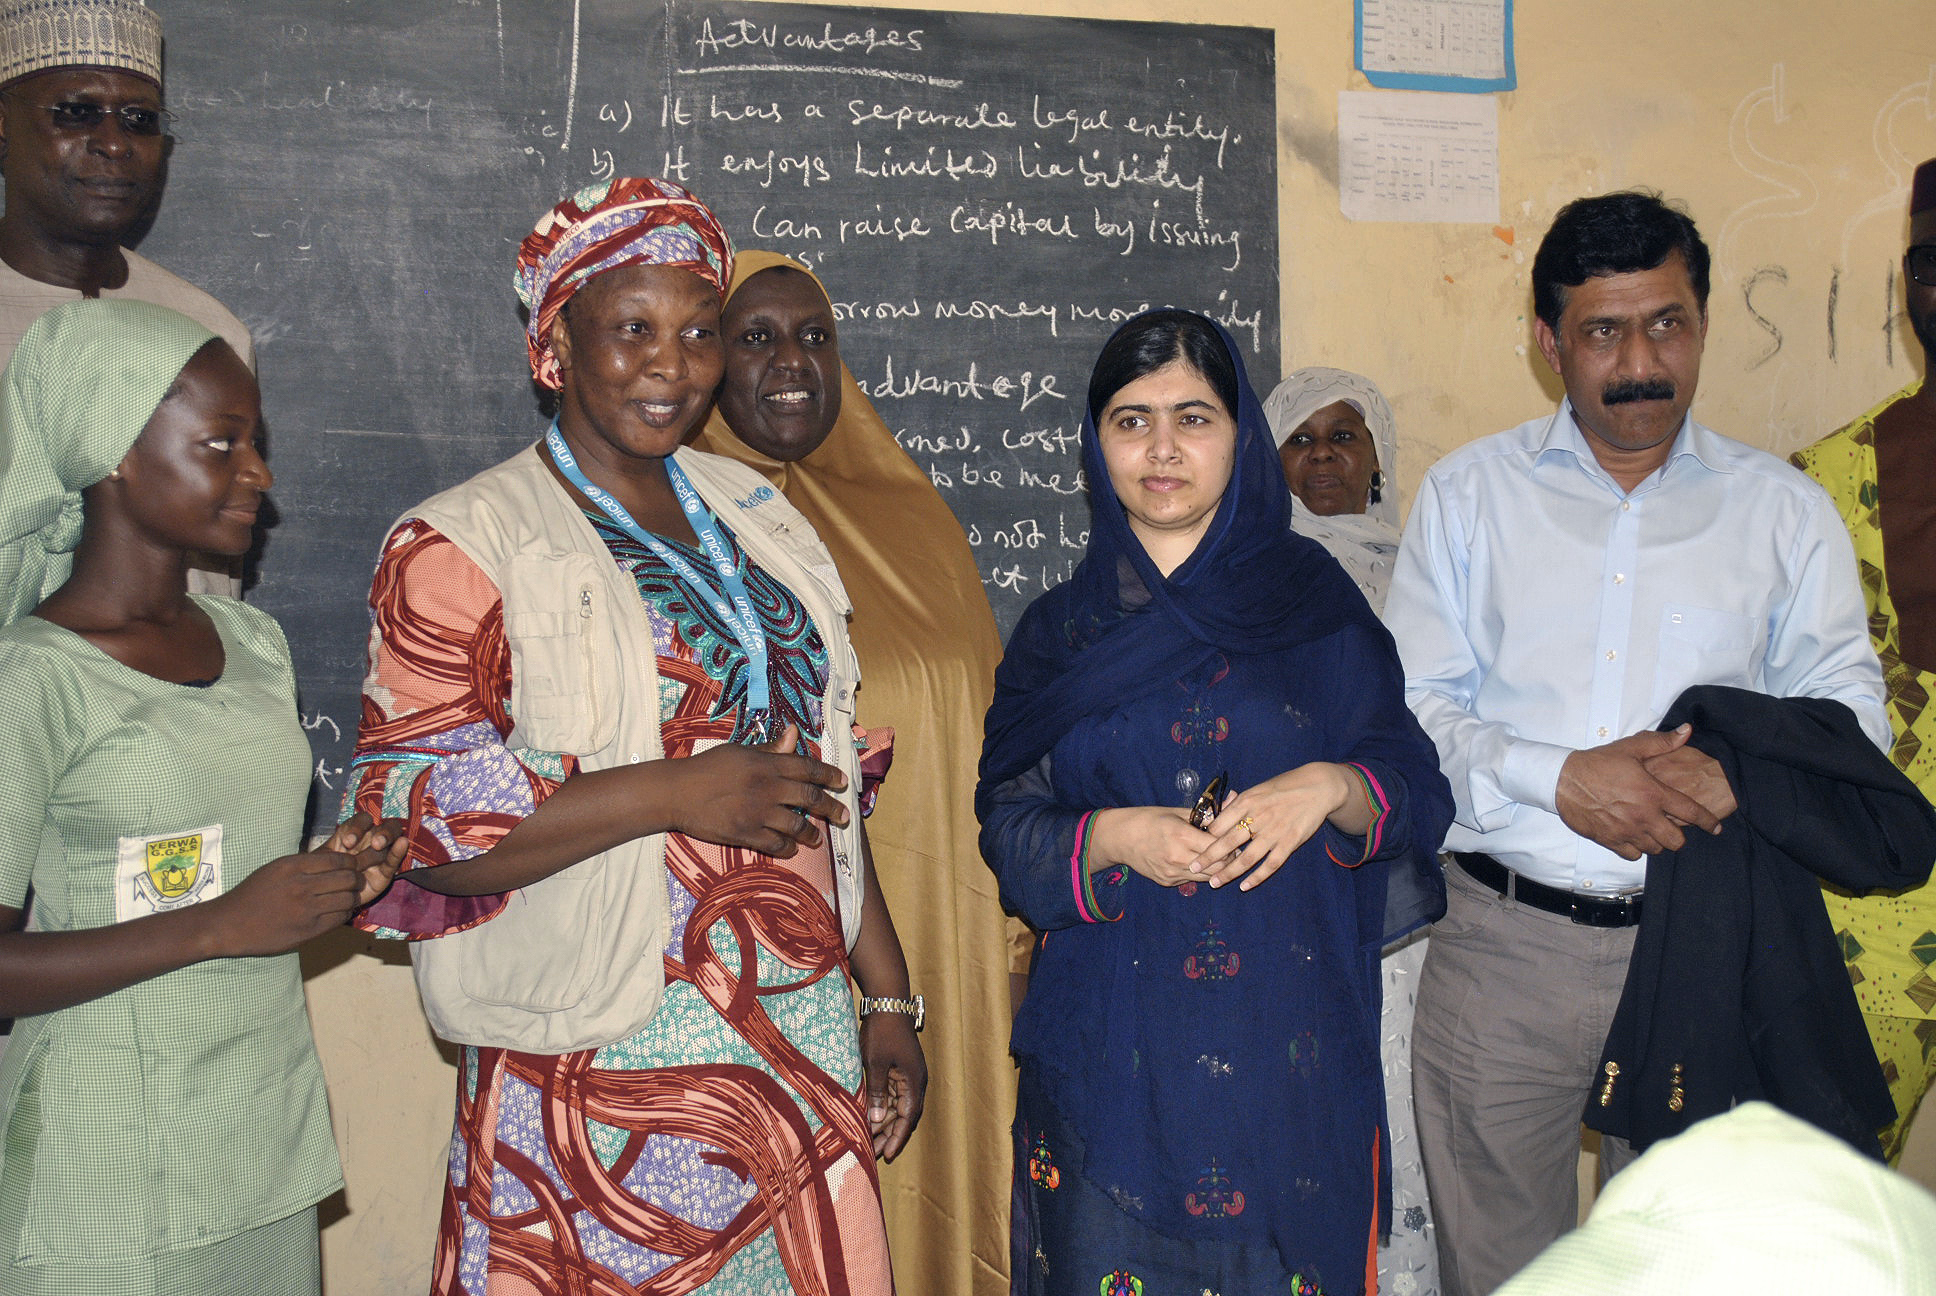 Pakistani activist Malala Yousafzai, center right, visits a school in Maiduguri, Nigeria, July. 18, 2017. The Nobel Peace laureate spoke out for the many girls abducted under Boko Haram's deadly insurgency.